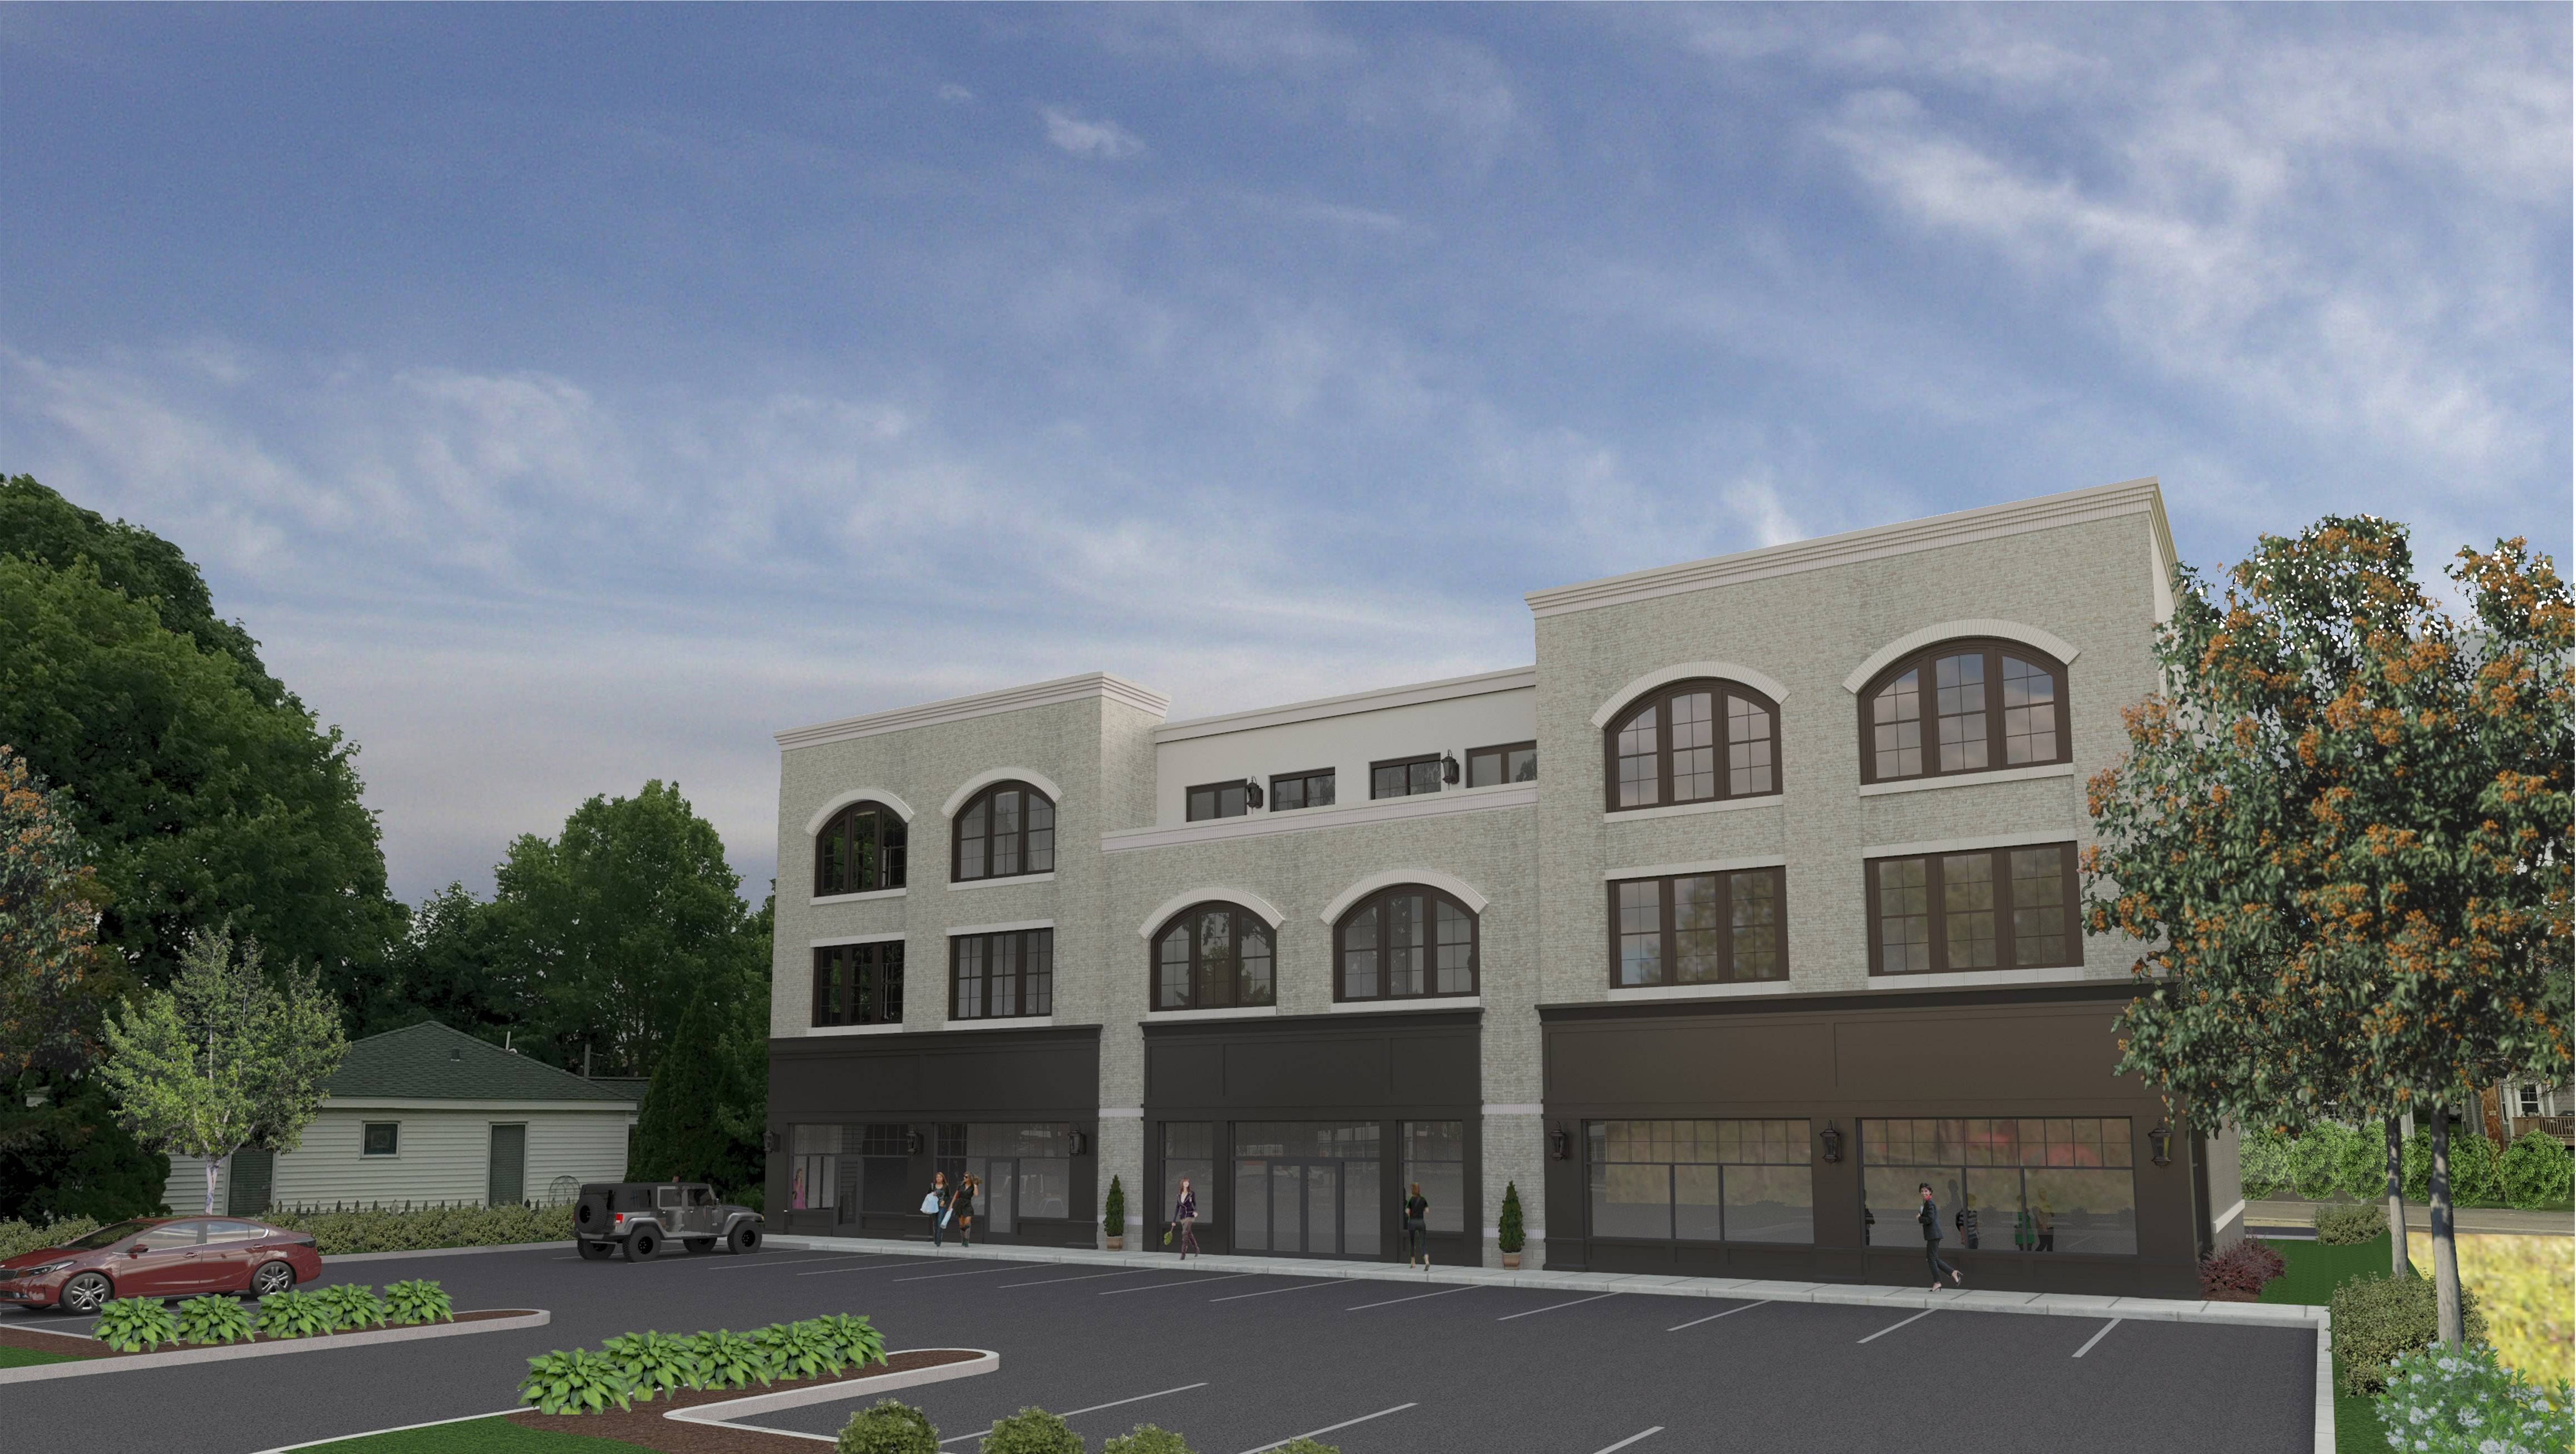 A retail and apartment building called The Washington has been approved to be built on a vacant lot on the east side of Washington Street at 7th Avenue north of downtown Naperville near the 5th Avenue Metra station.